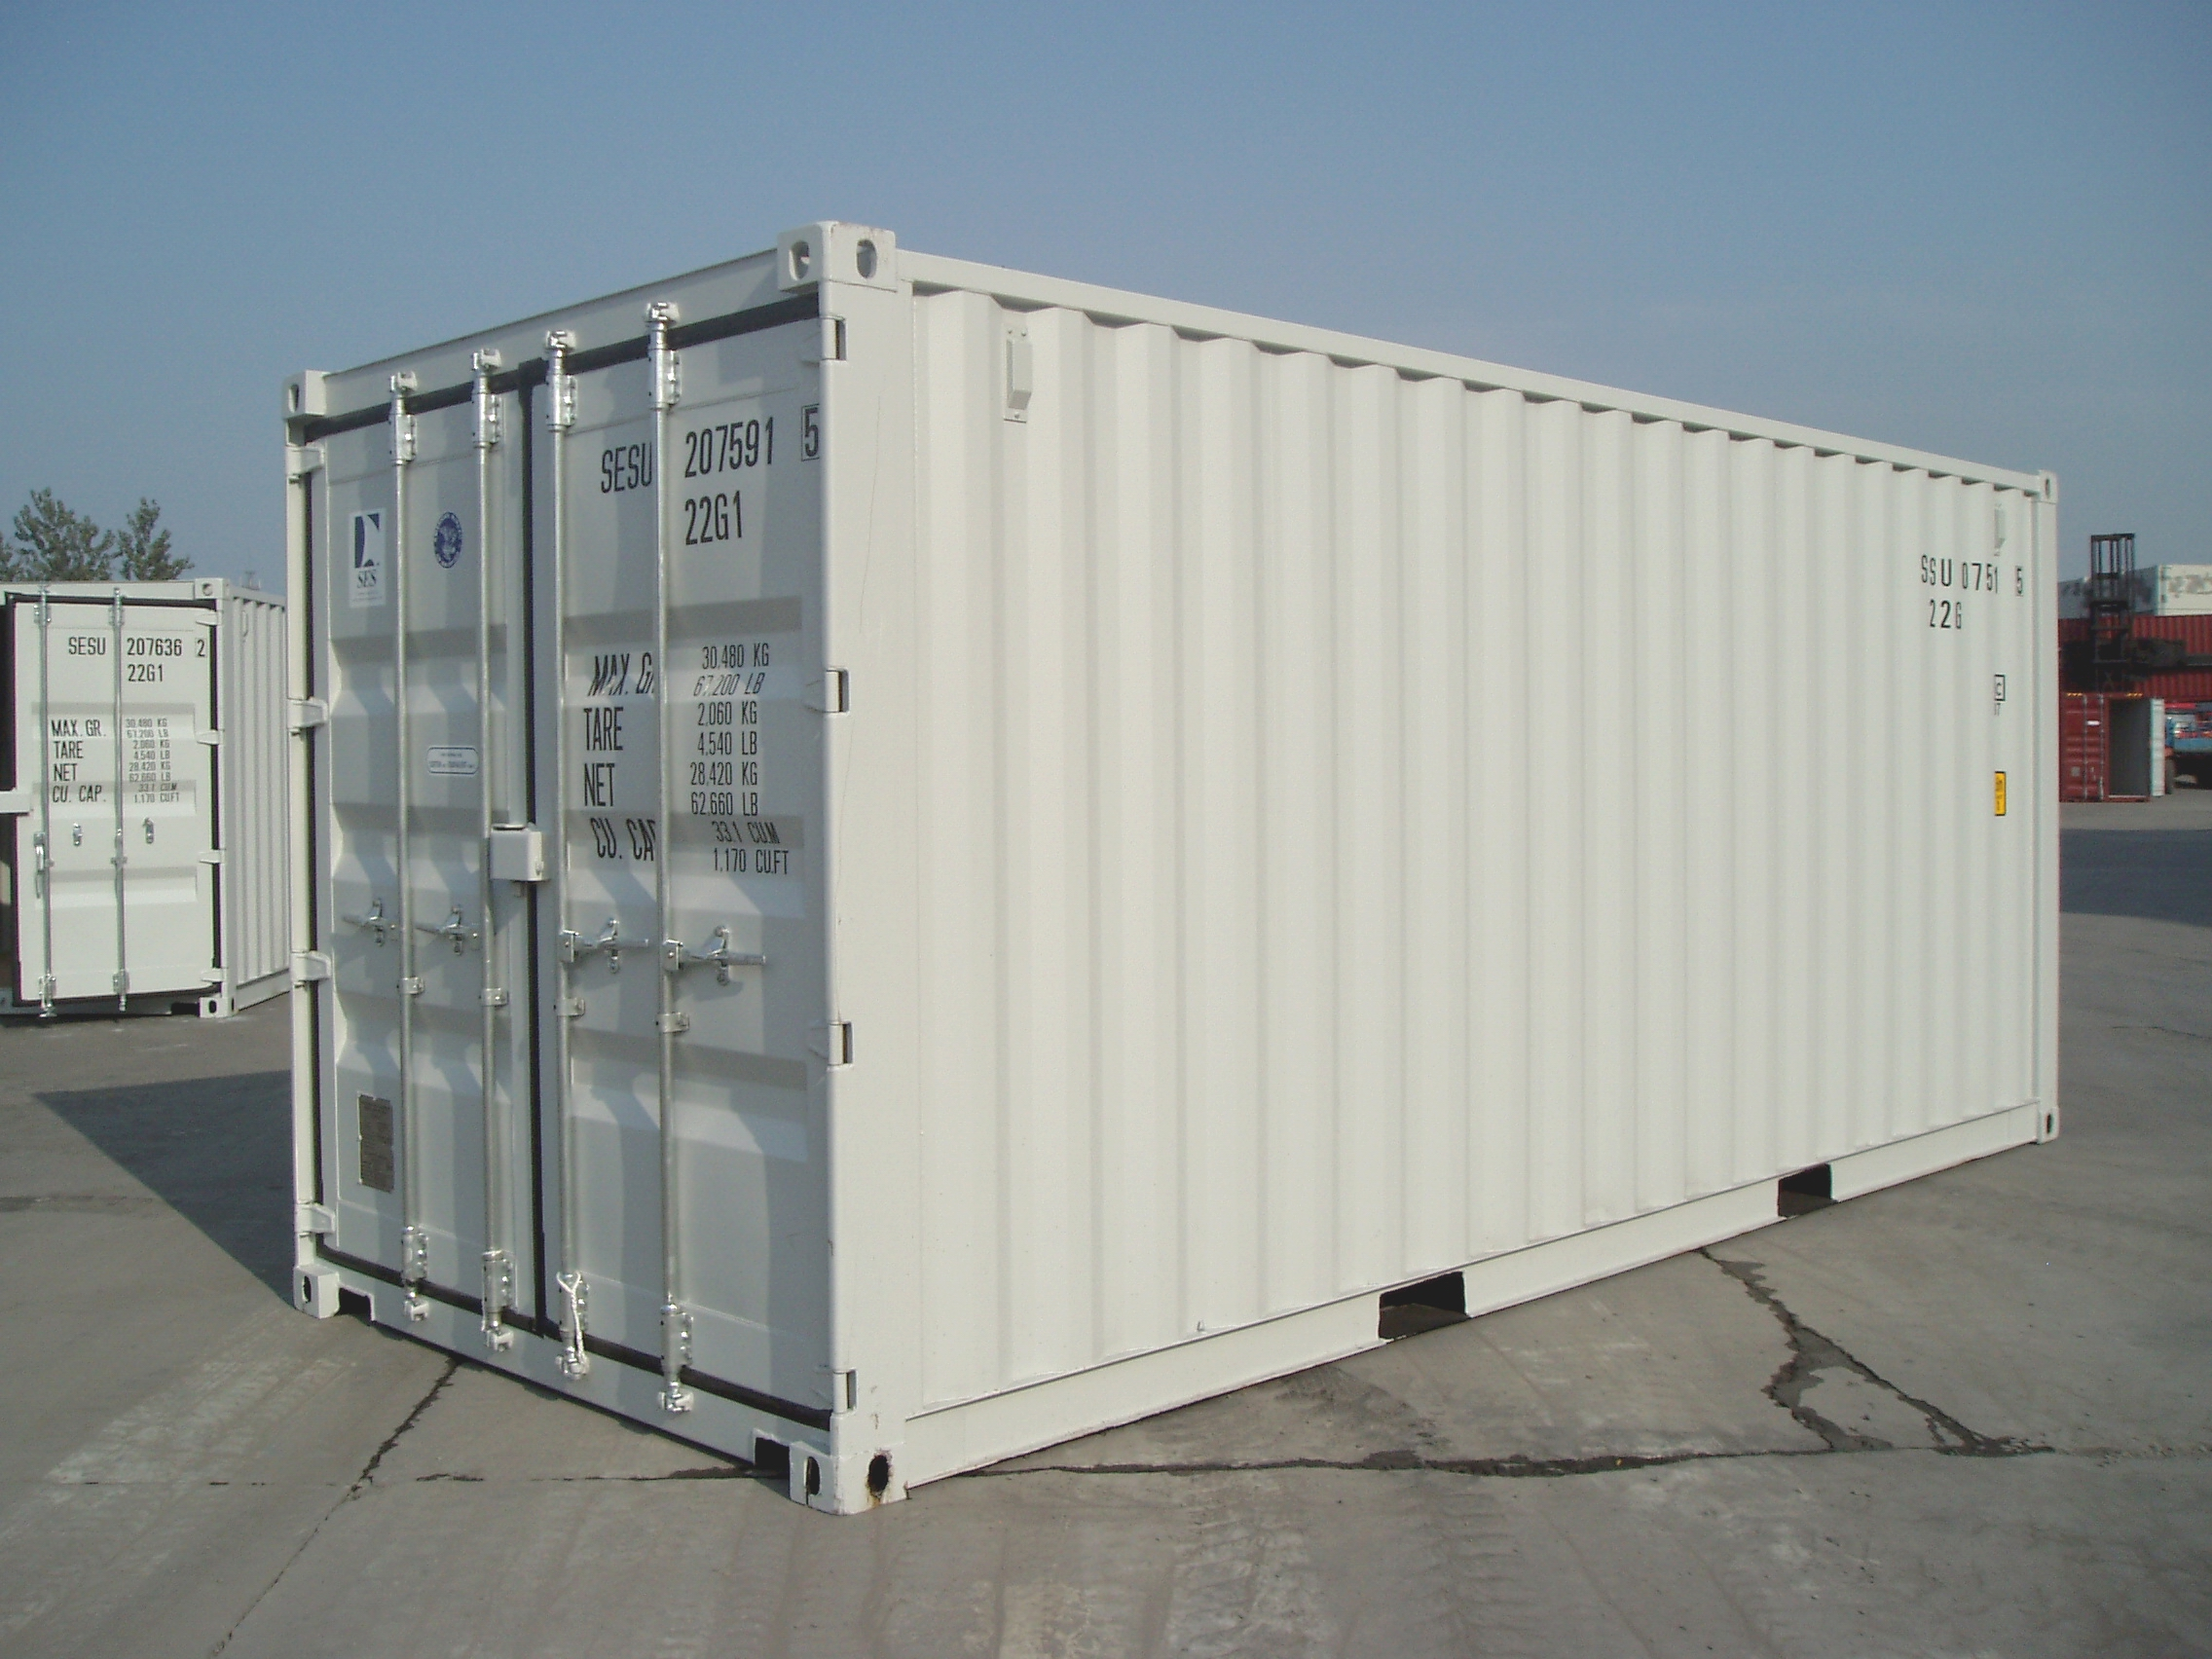 NEW (ONE TRIP) 20' STANDARD CONTAINER